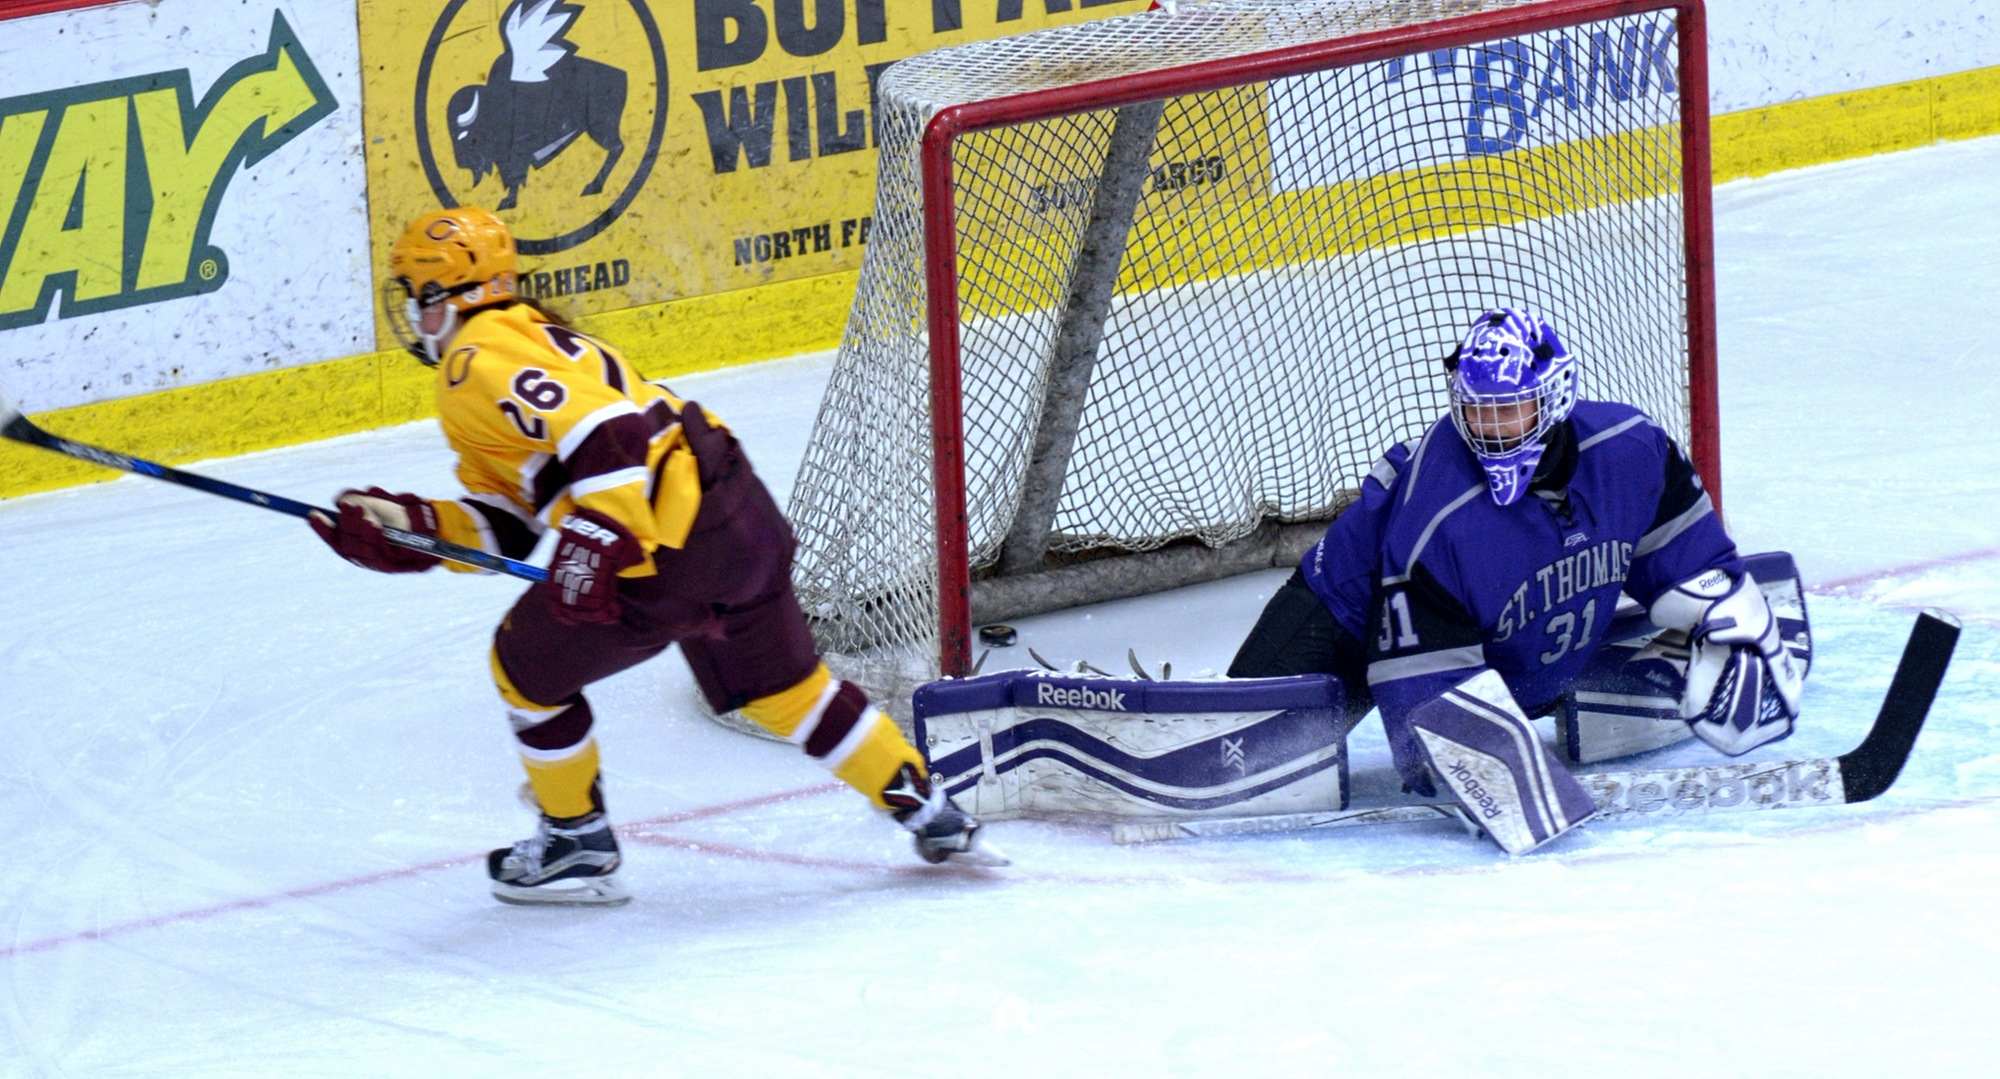 Junior Tori Davis slides the puck on a breakaway in the third period of the Cobbers' win over St. Thomas. The goal was the game winner and Davis' 10th of the year.